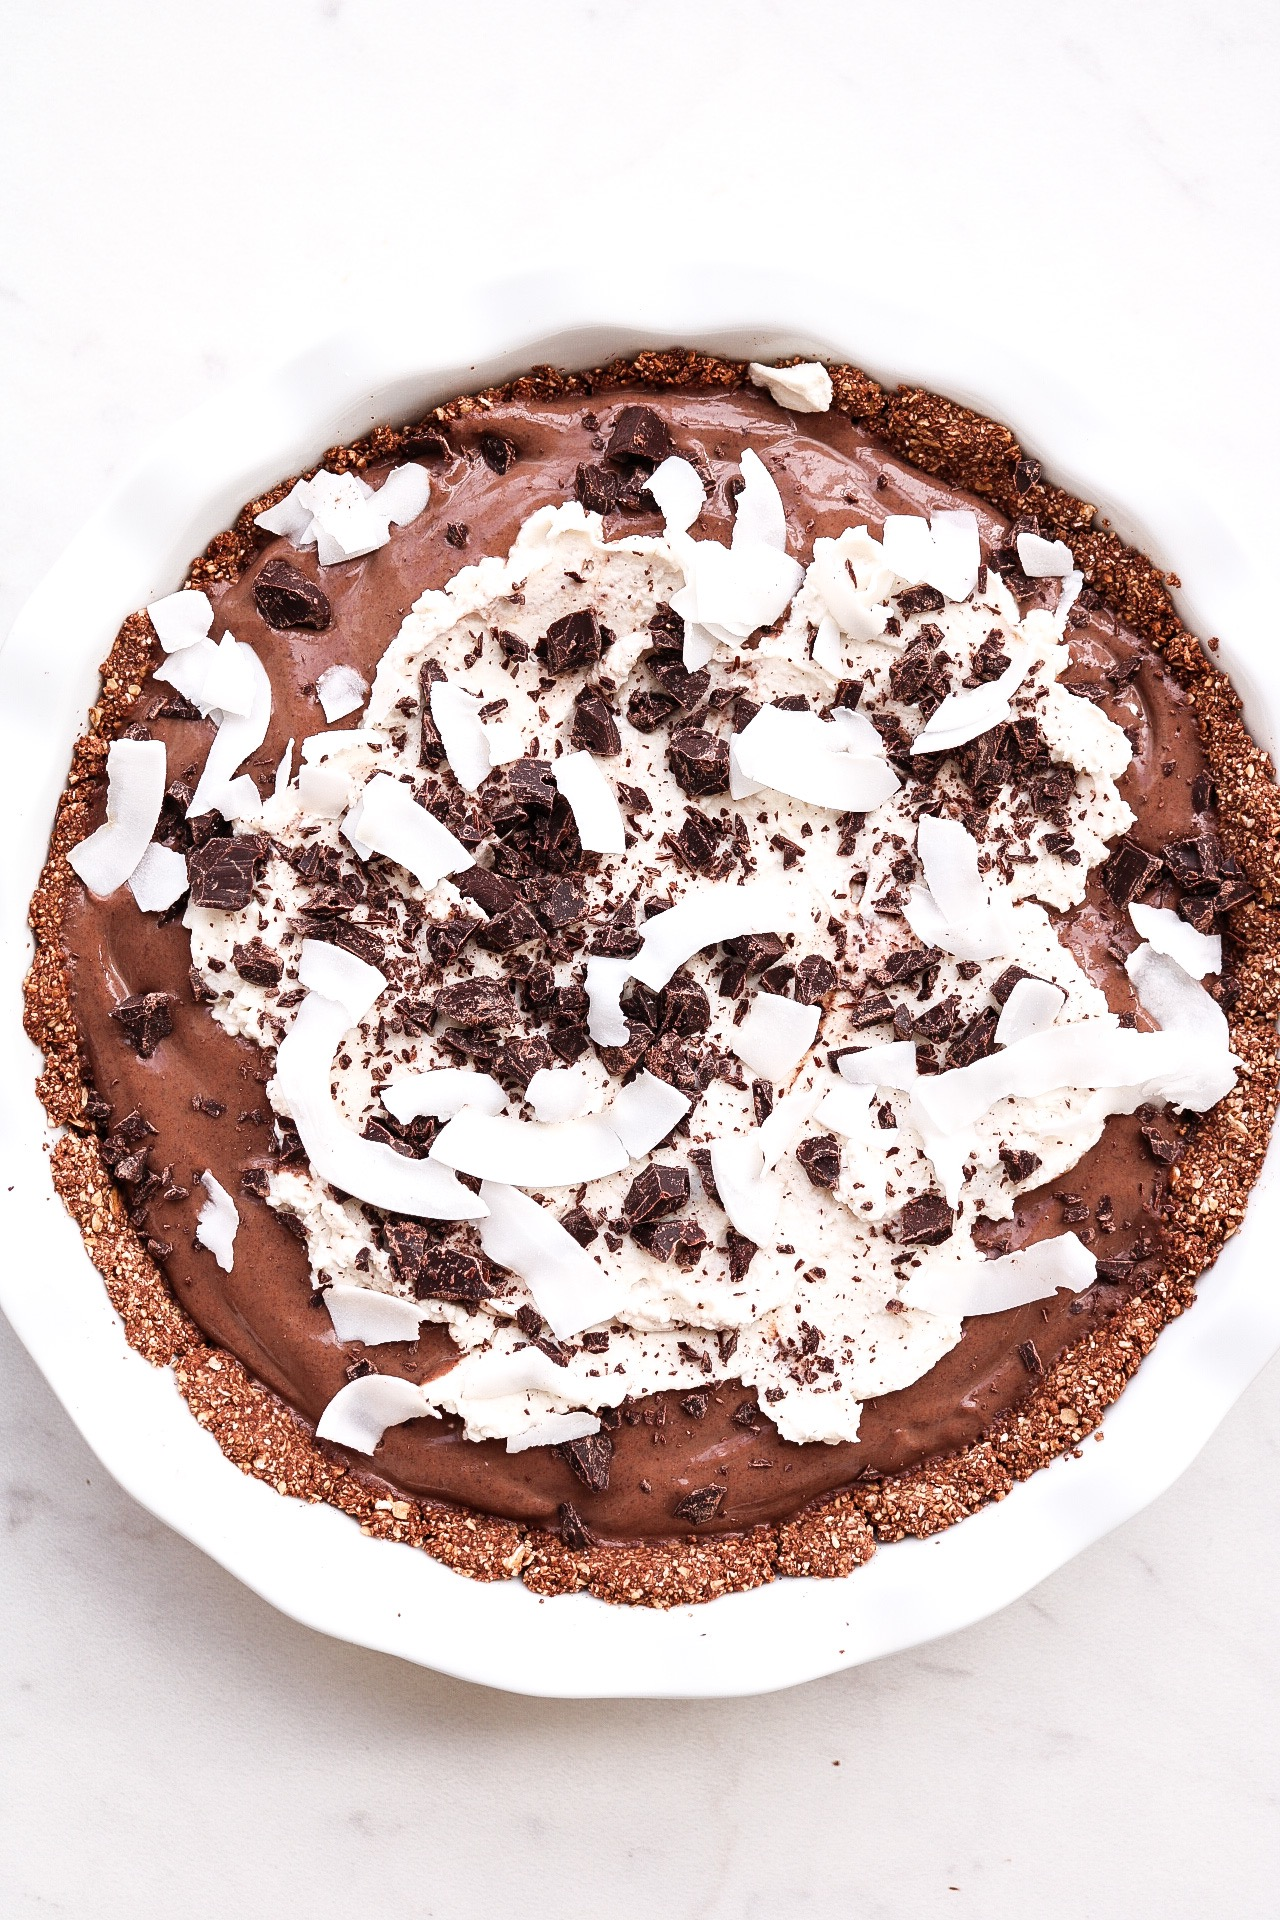 I decorated the pie with the coconut whipped cream, chopped chocolate, and coconut flakes.